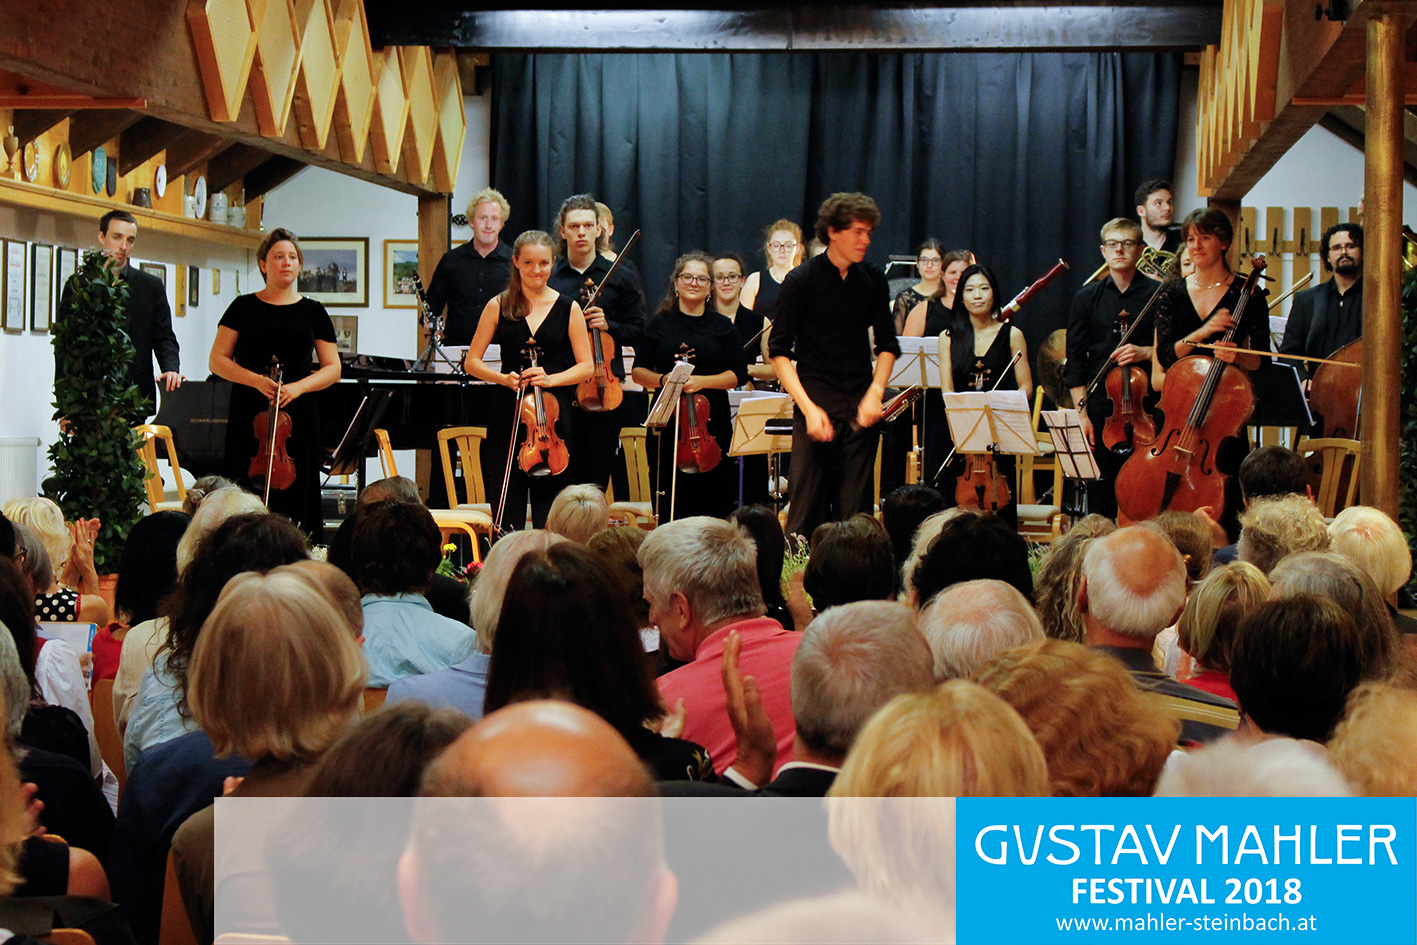 Orchestra for the Earth, Gustav Mahler Festival Steinbach